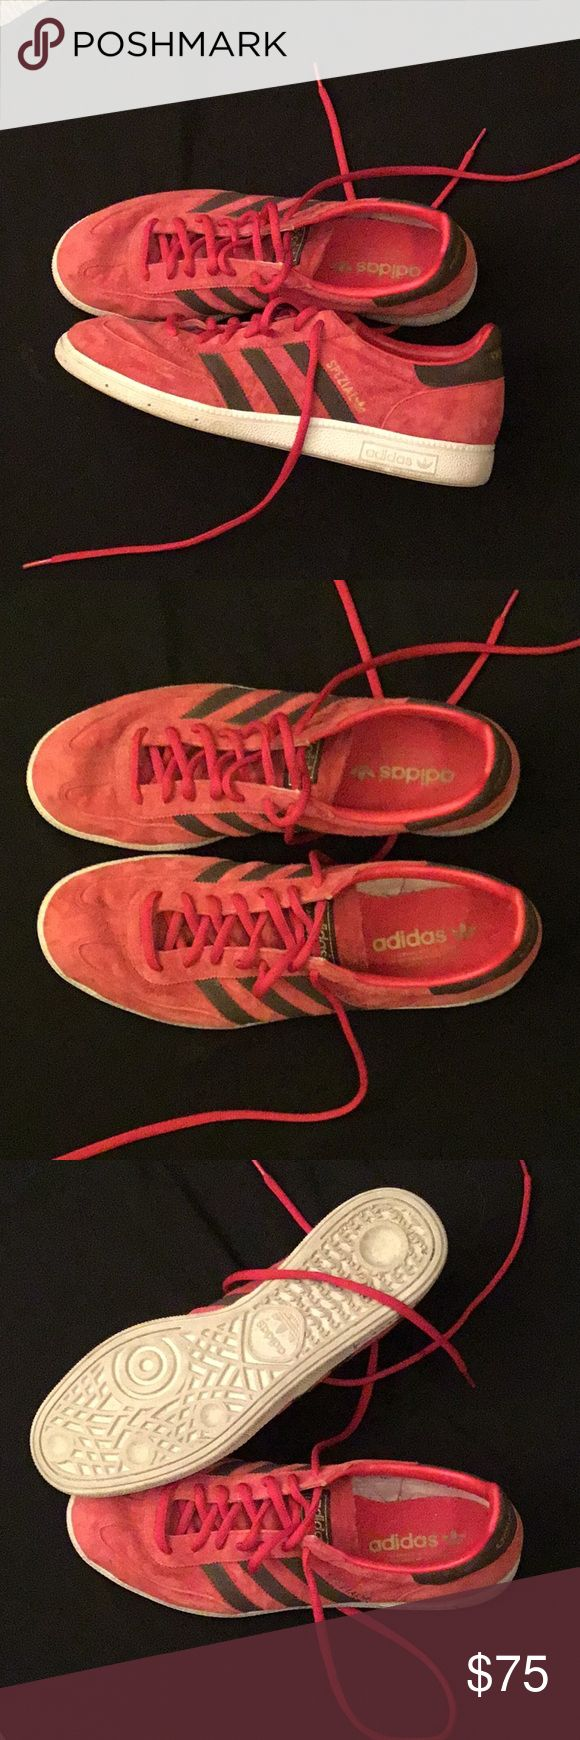 Adidas Handball Spezial Size 11 Shoes sneakers Adidas Shoes Size 11. Worn once casually- in almost new condition!!!  No stain, rips or tears!  Stylish and comfortable. adidas Shoes Sneakers